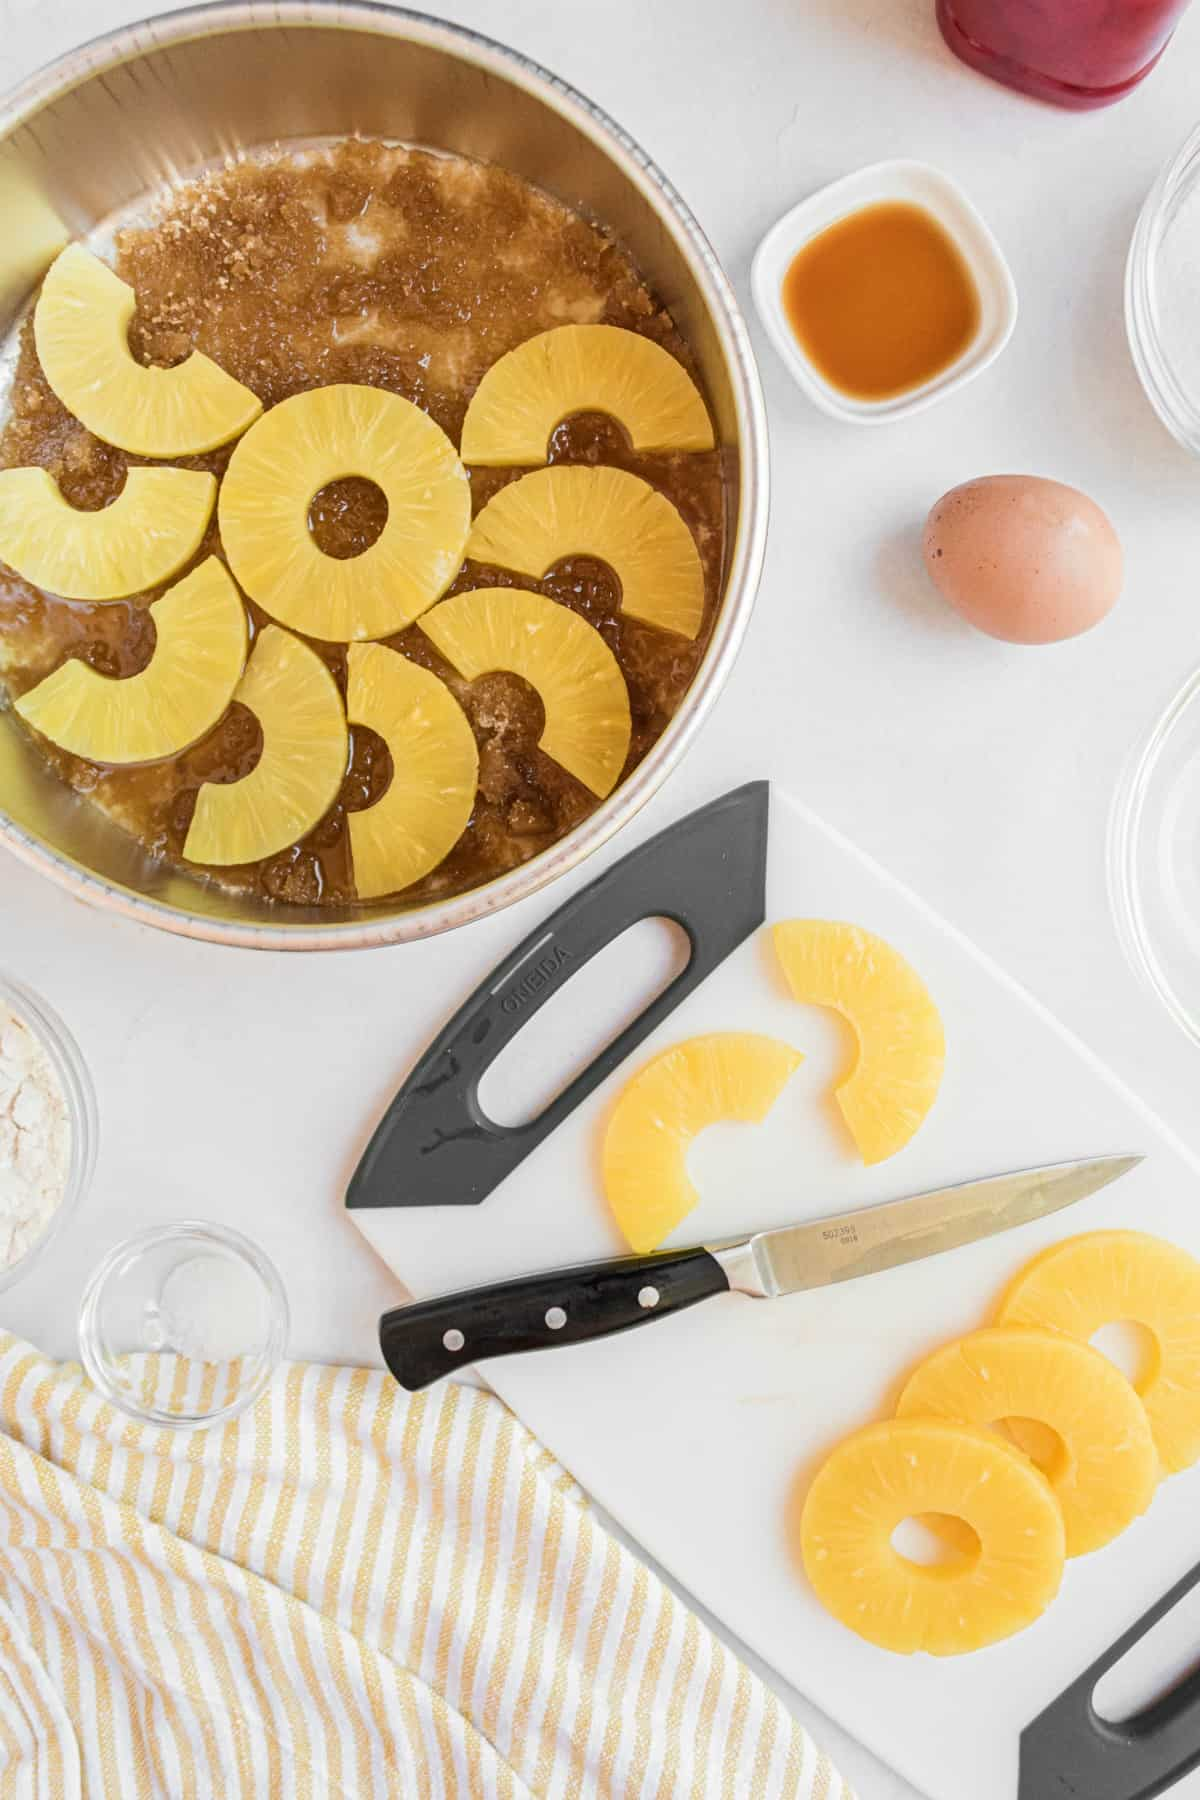 Pineapple slices being cut in half and arranged in the melted butter and brown sugar cake pan.